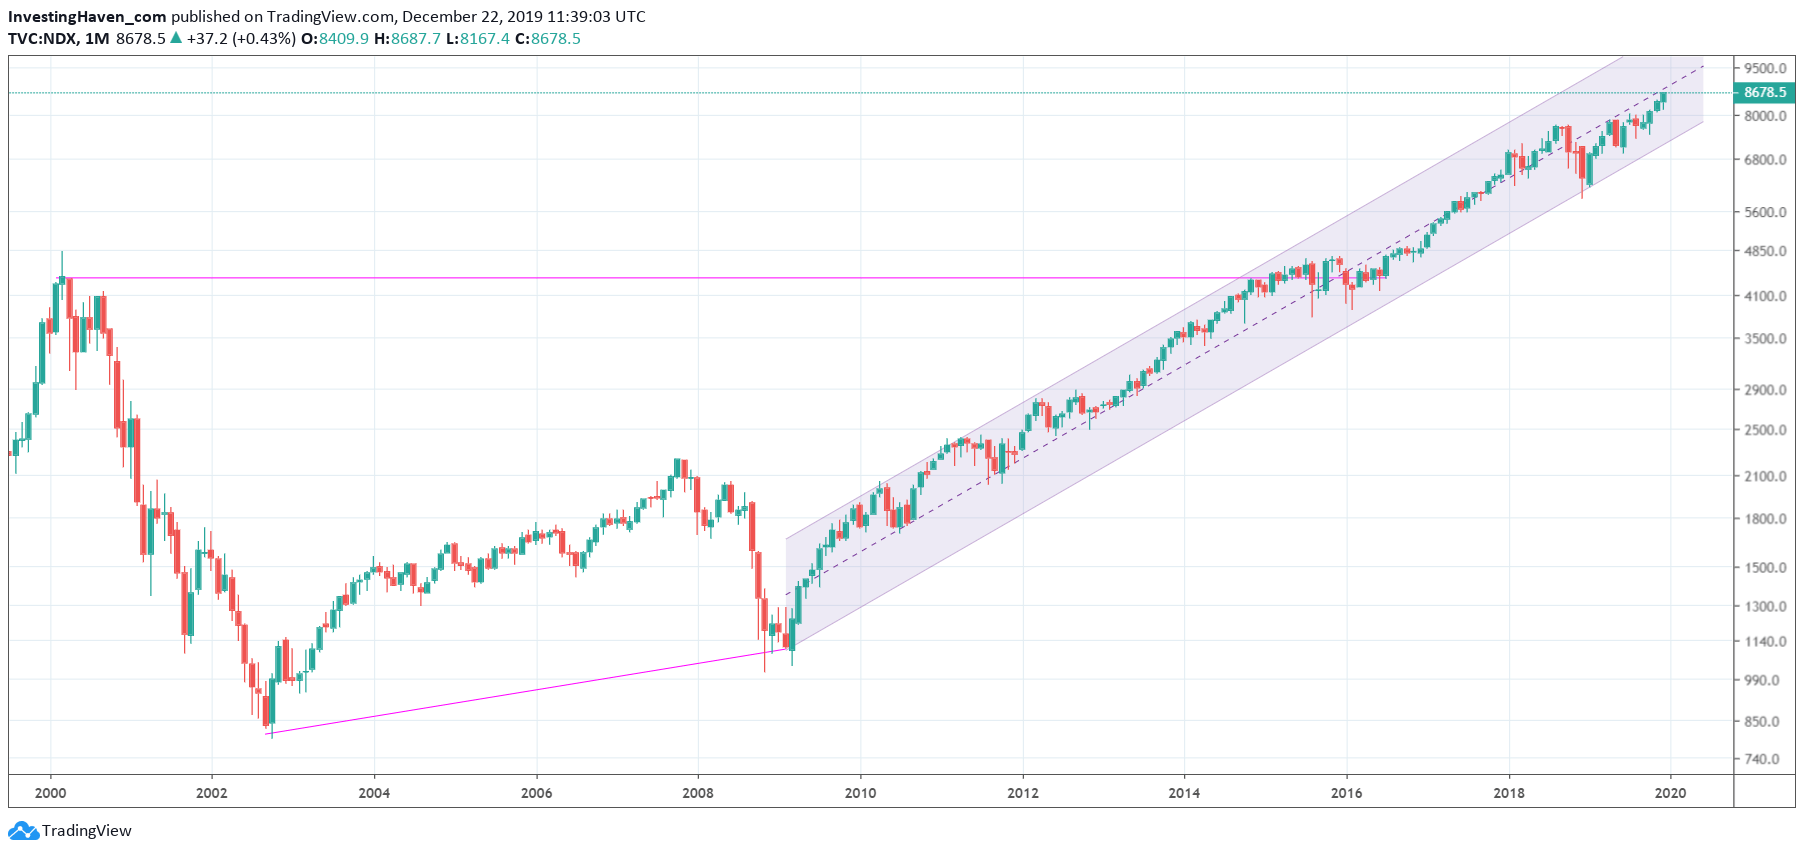 nasdaq long term 20 year chart